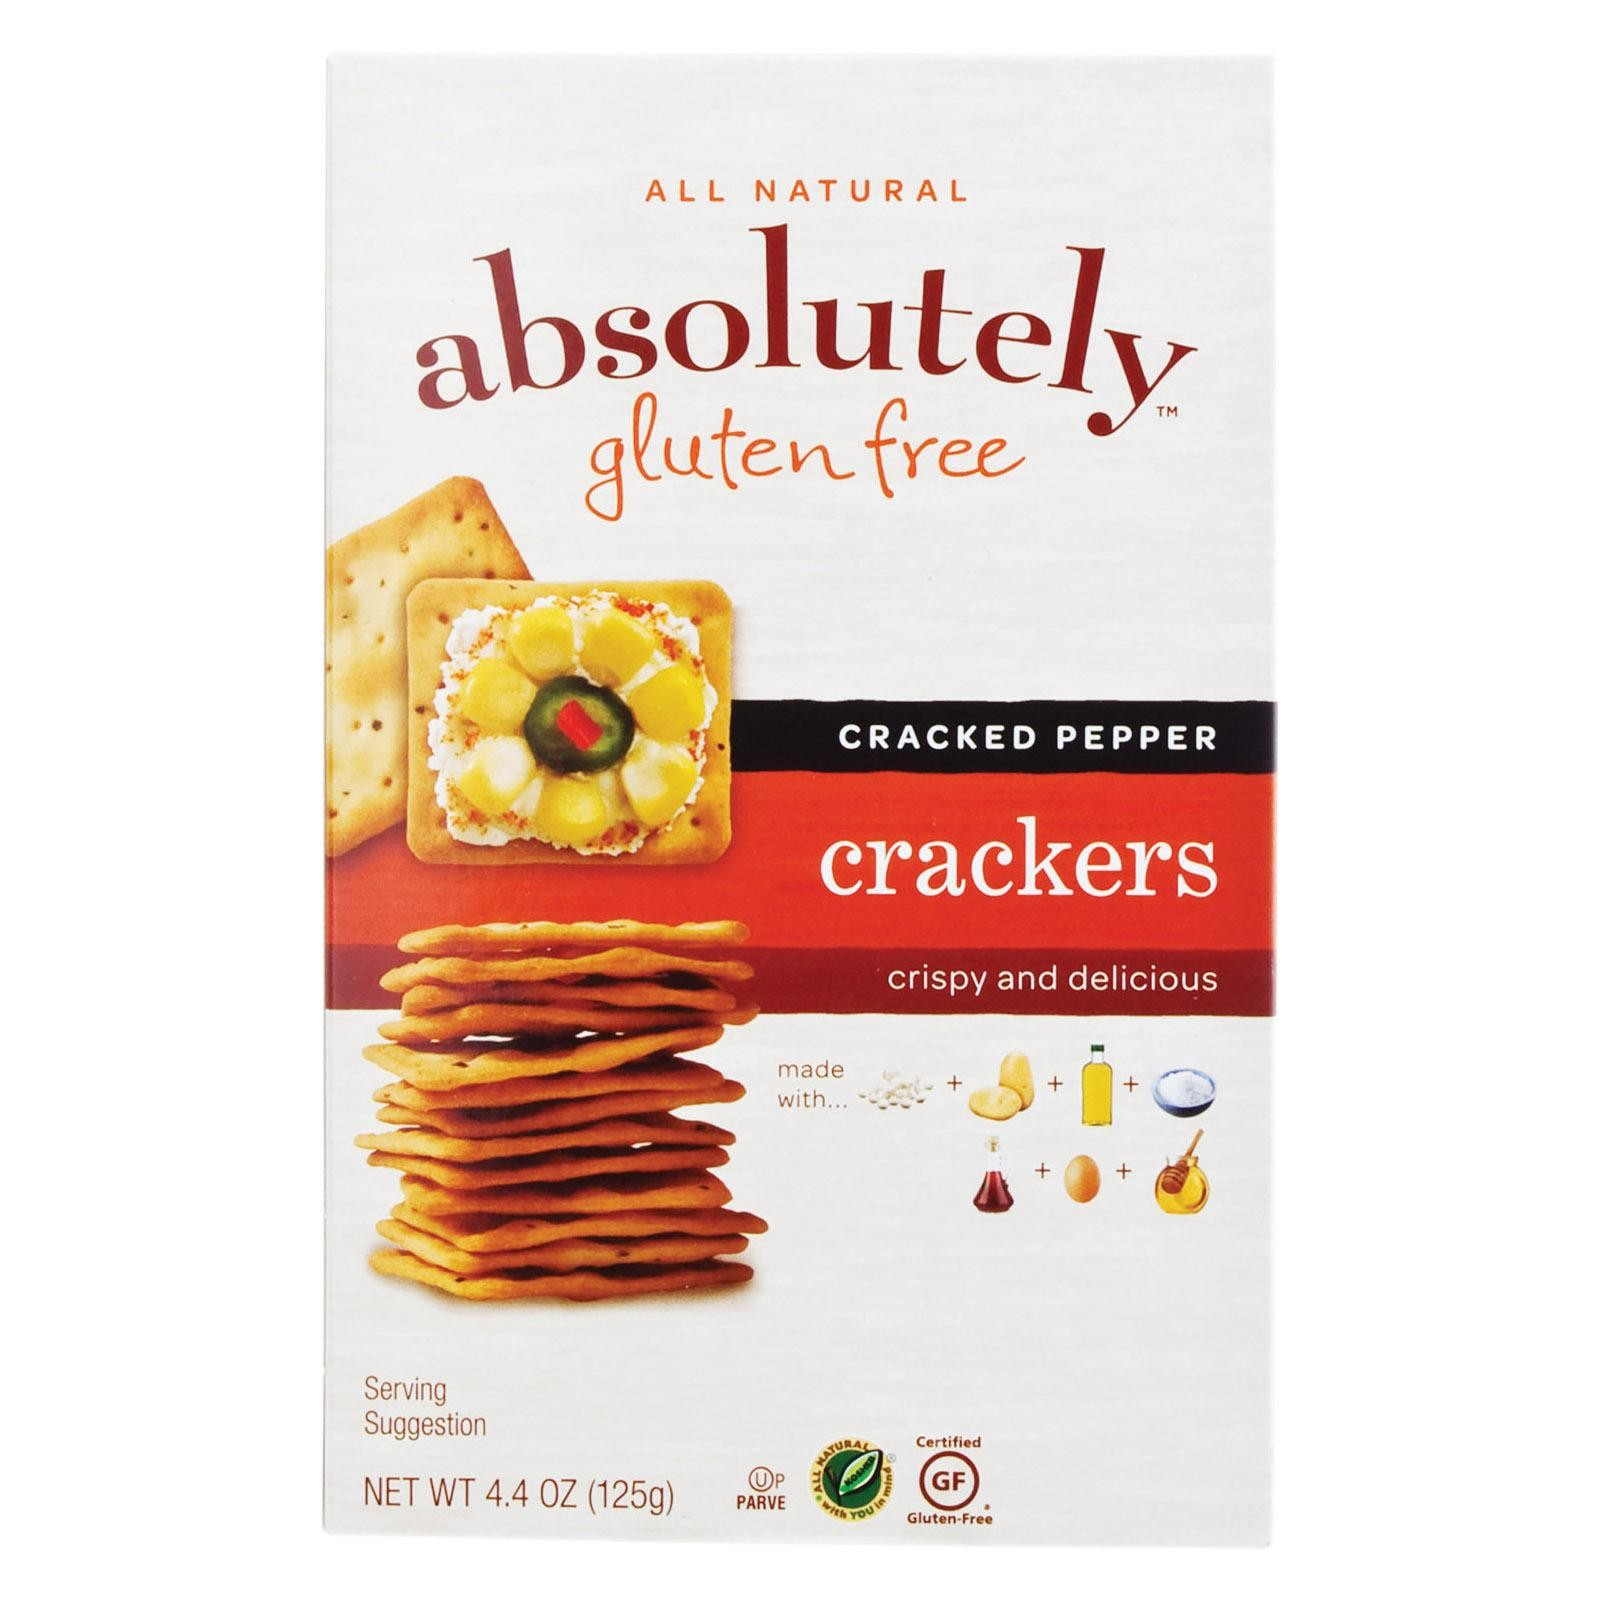 Absolutely Gluten Free Crackers - Cracked Pepper - Pack of 12 - 4.4 Oz.